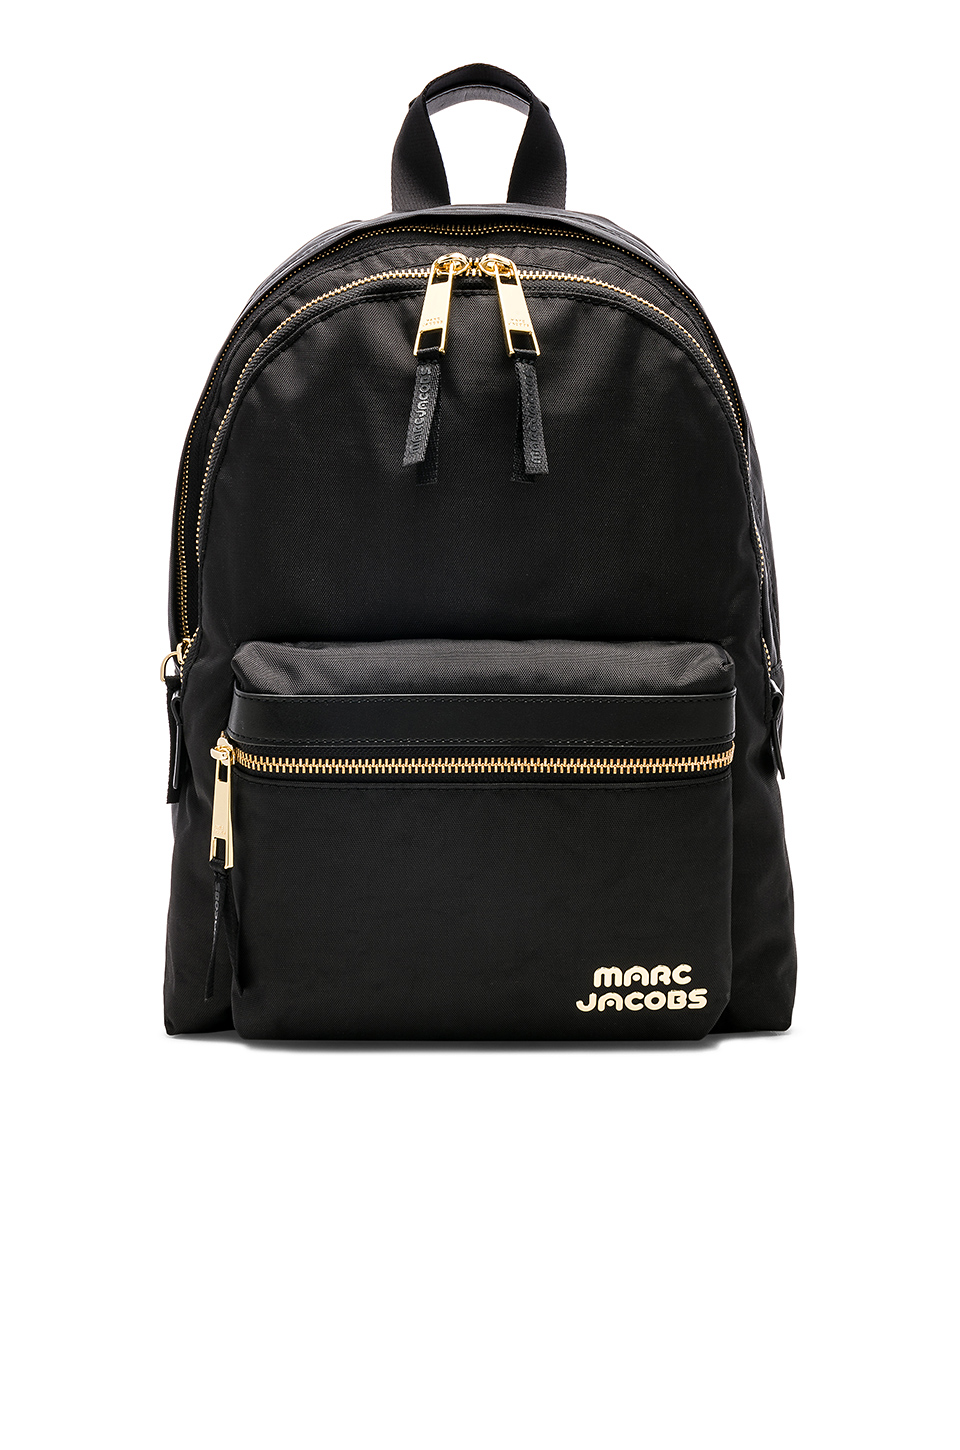 defab5fca1 Buy Original Marc Jacobs Large Backpack at Indonesia | BOBOBOBO